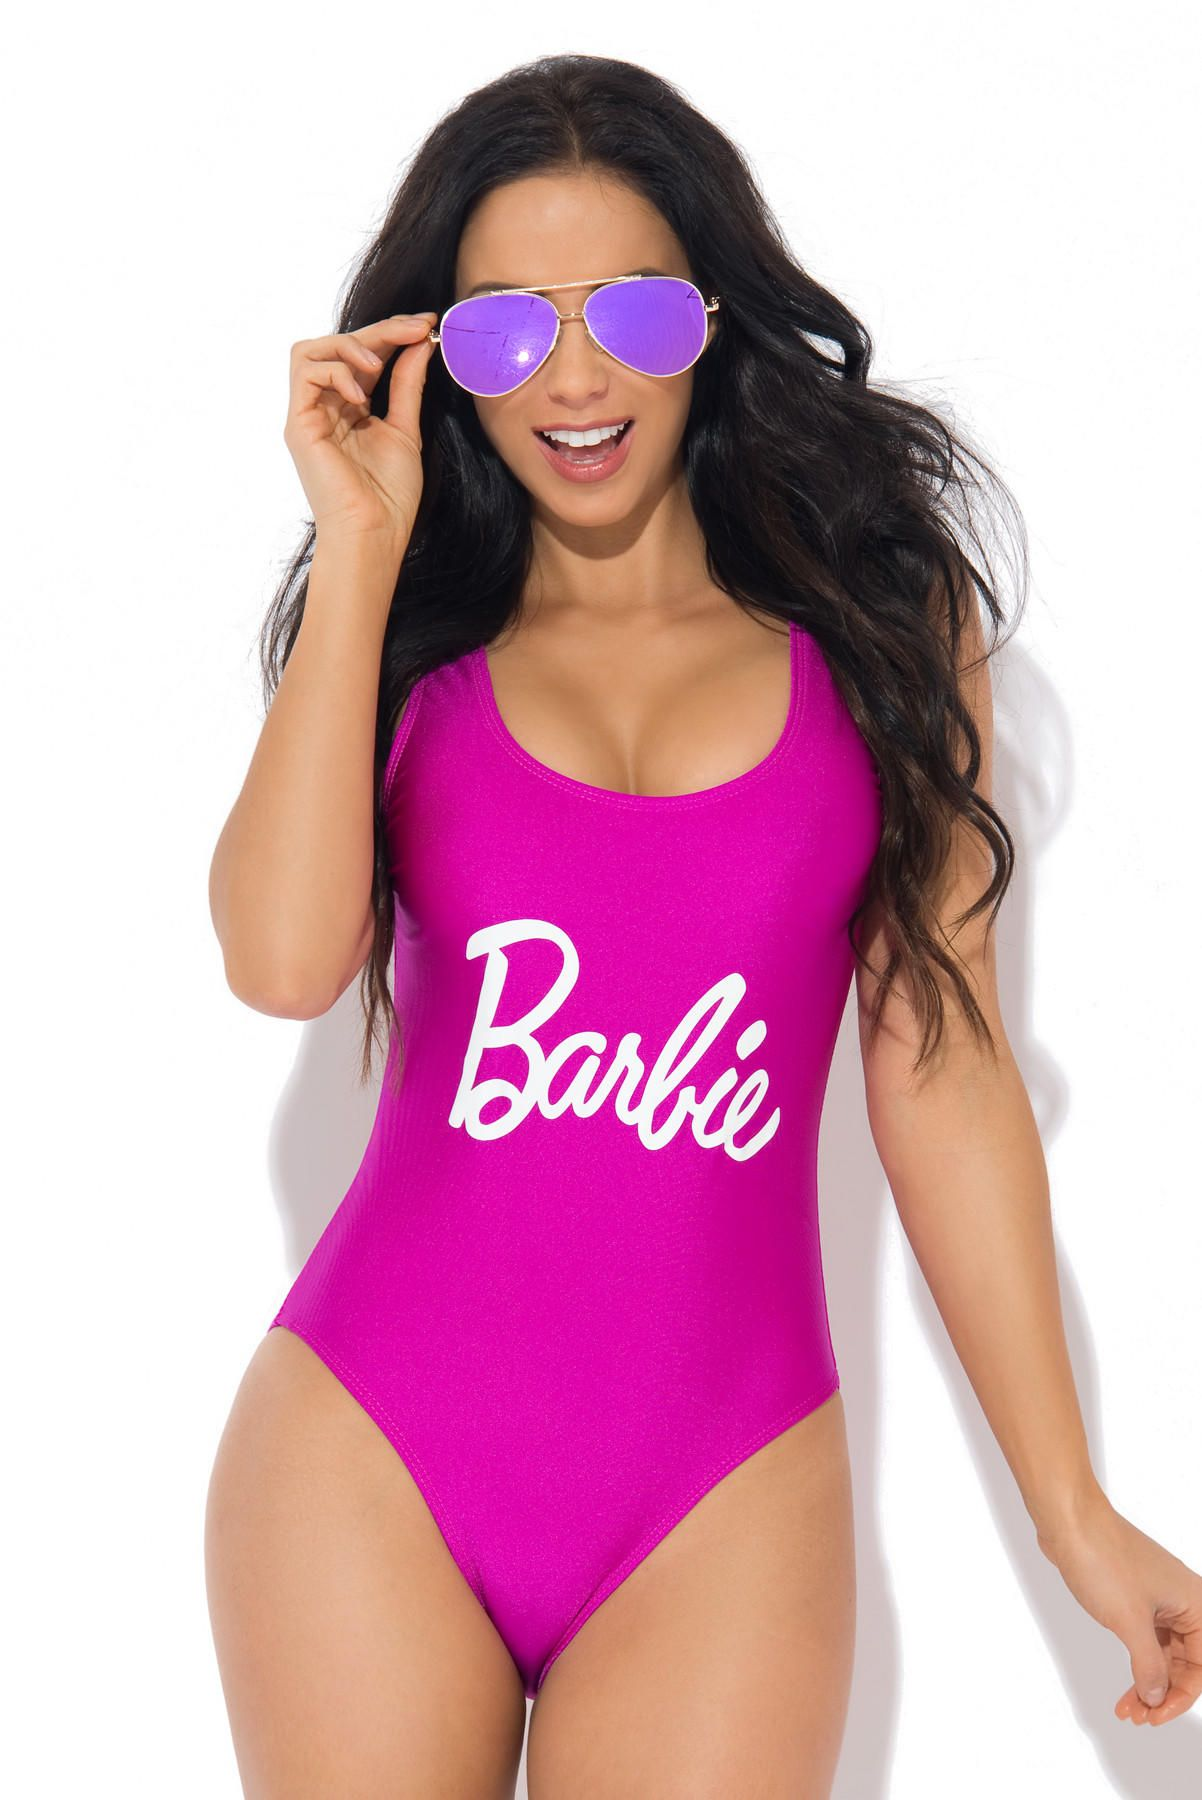 bff634e516c6f Barbie One Piece Swimsuit Purple from Fashion Effect Store. Shop more  products from Fashion Effect Store on Wanelo.